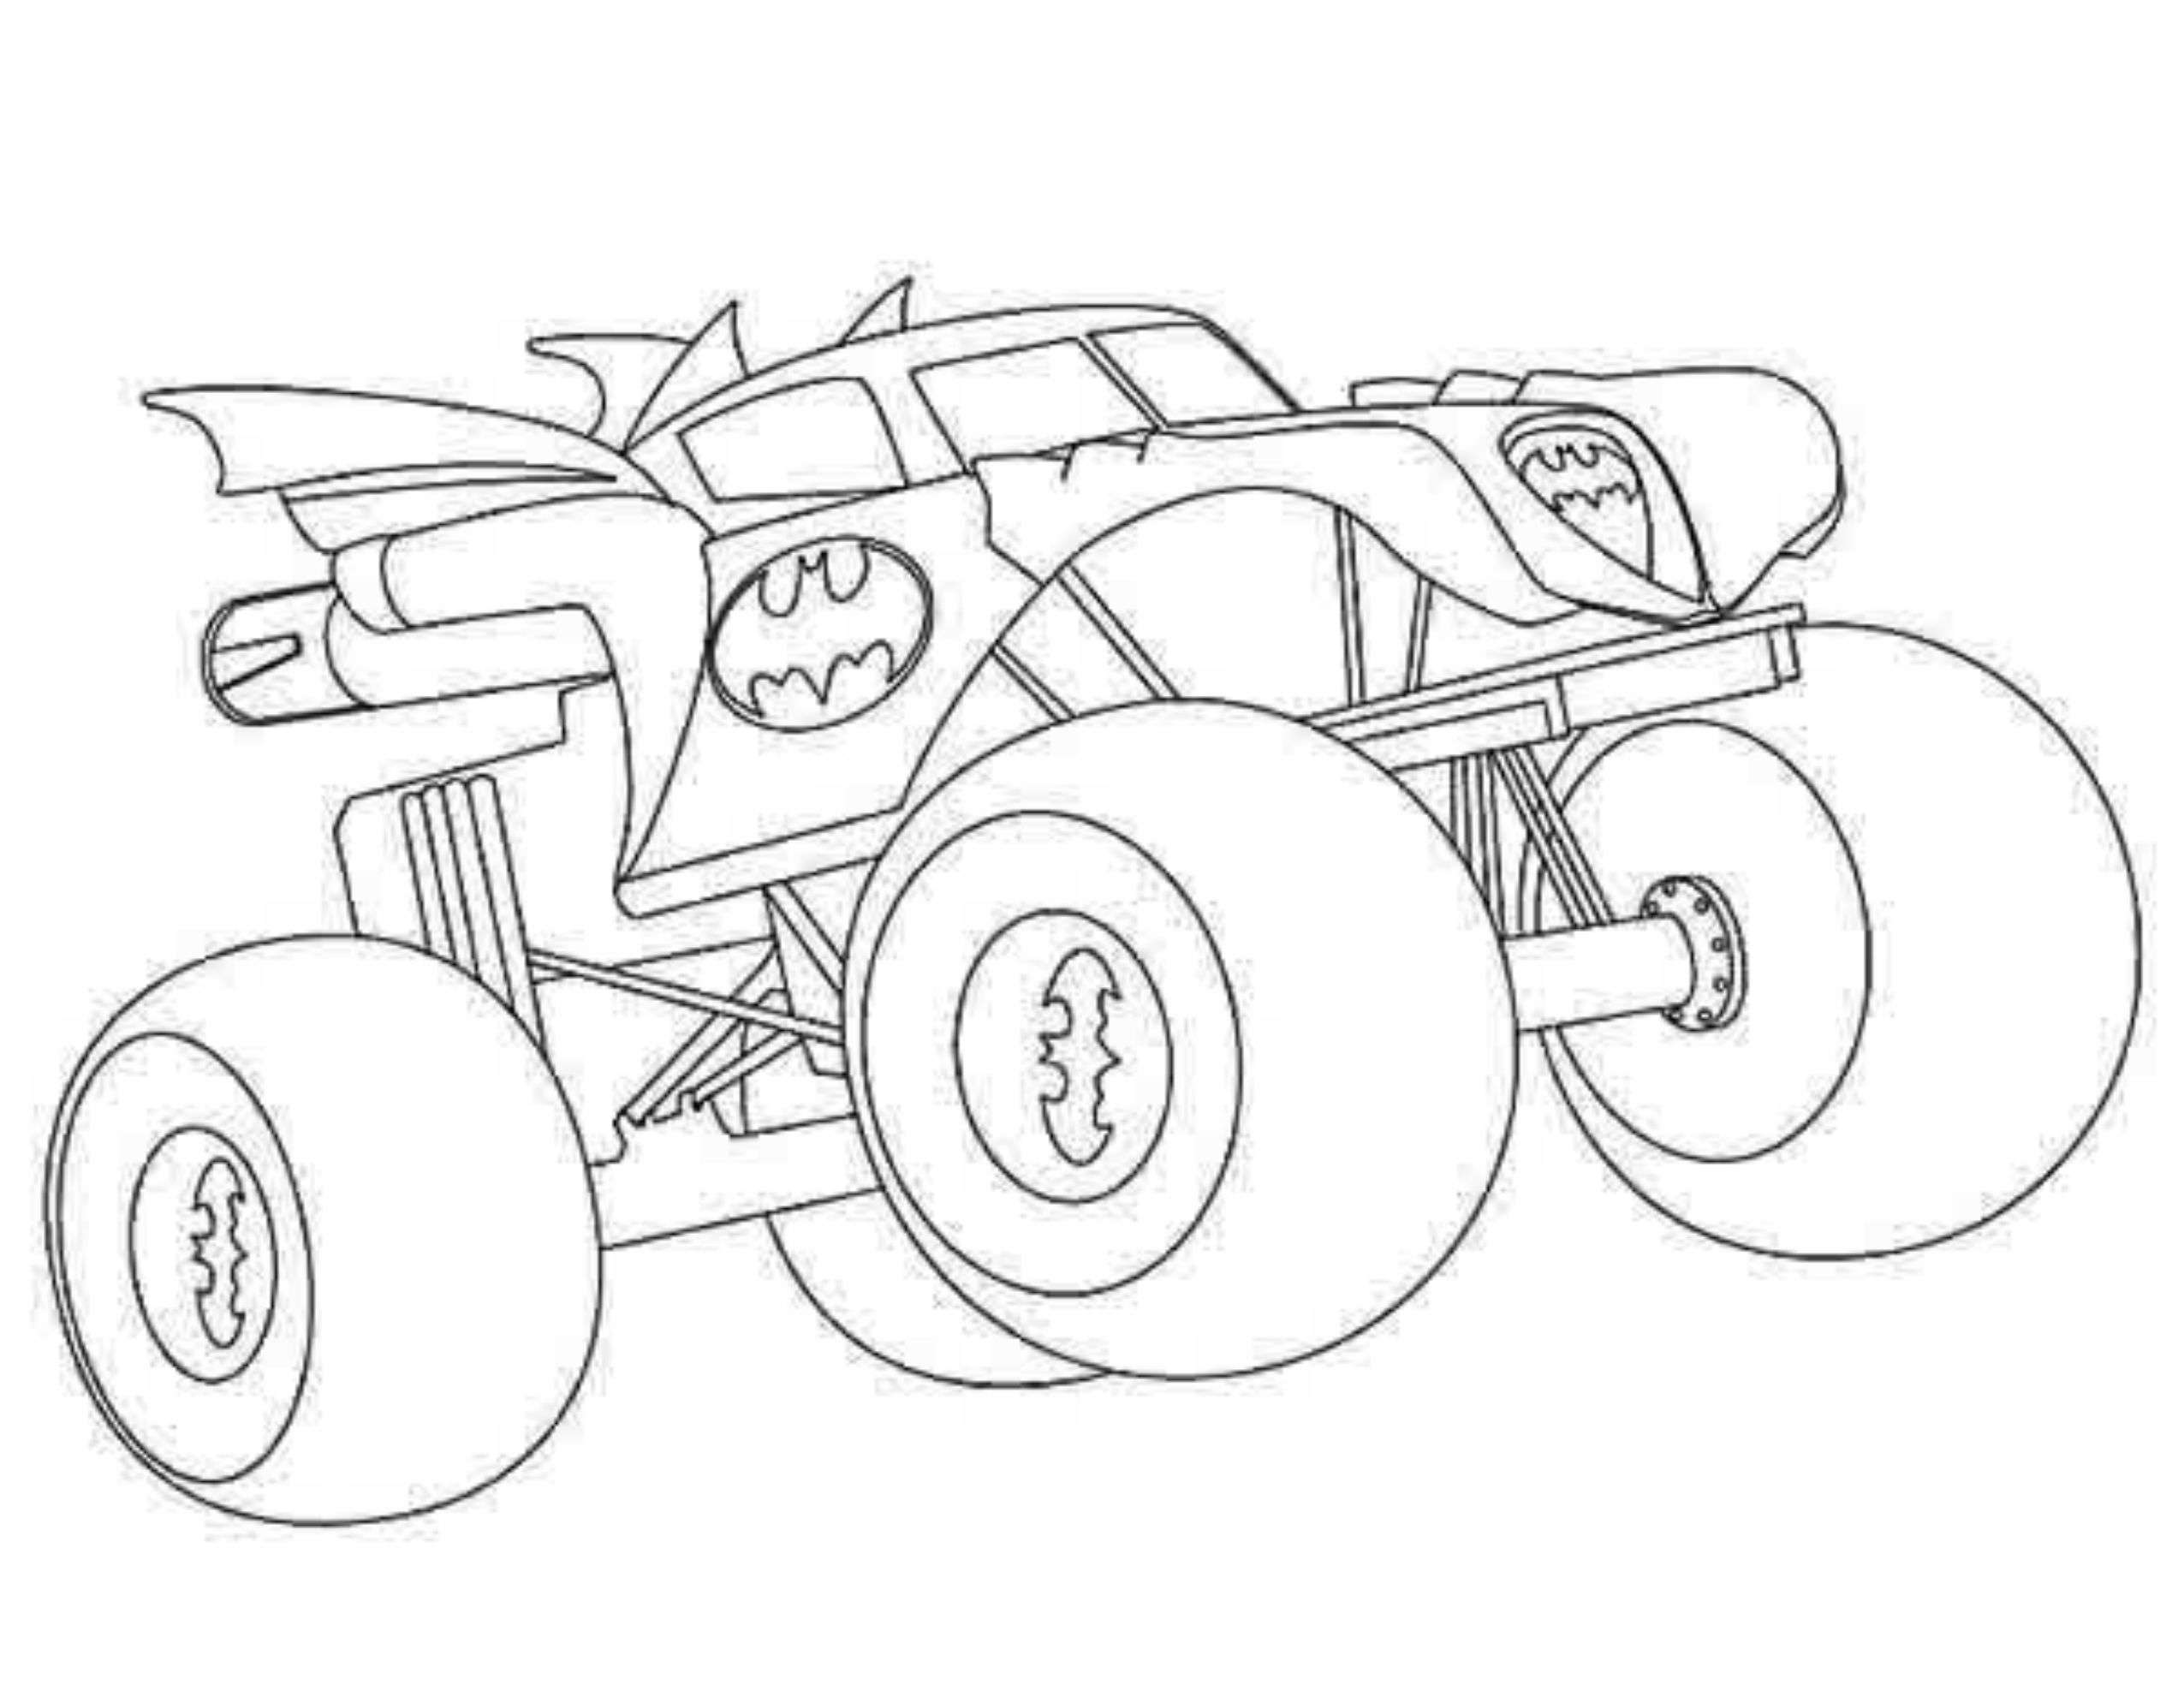 monster truck pictures to color monster truck bigfoot big foot kids coloring pages pictures truck to monster color